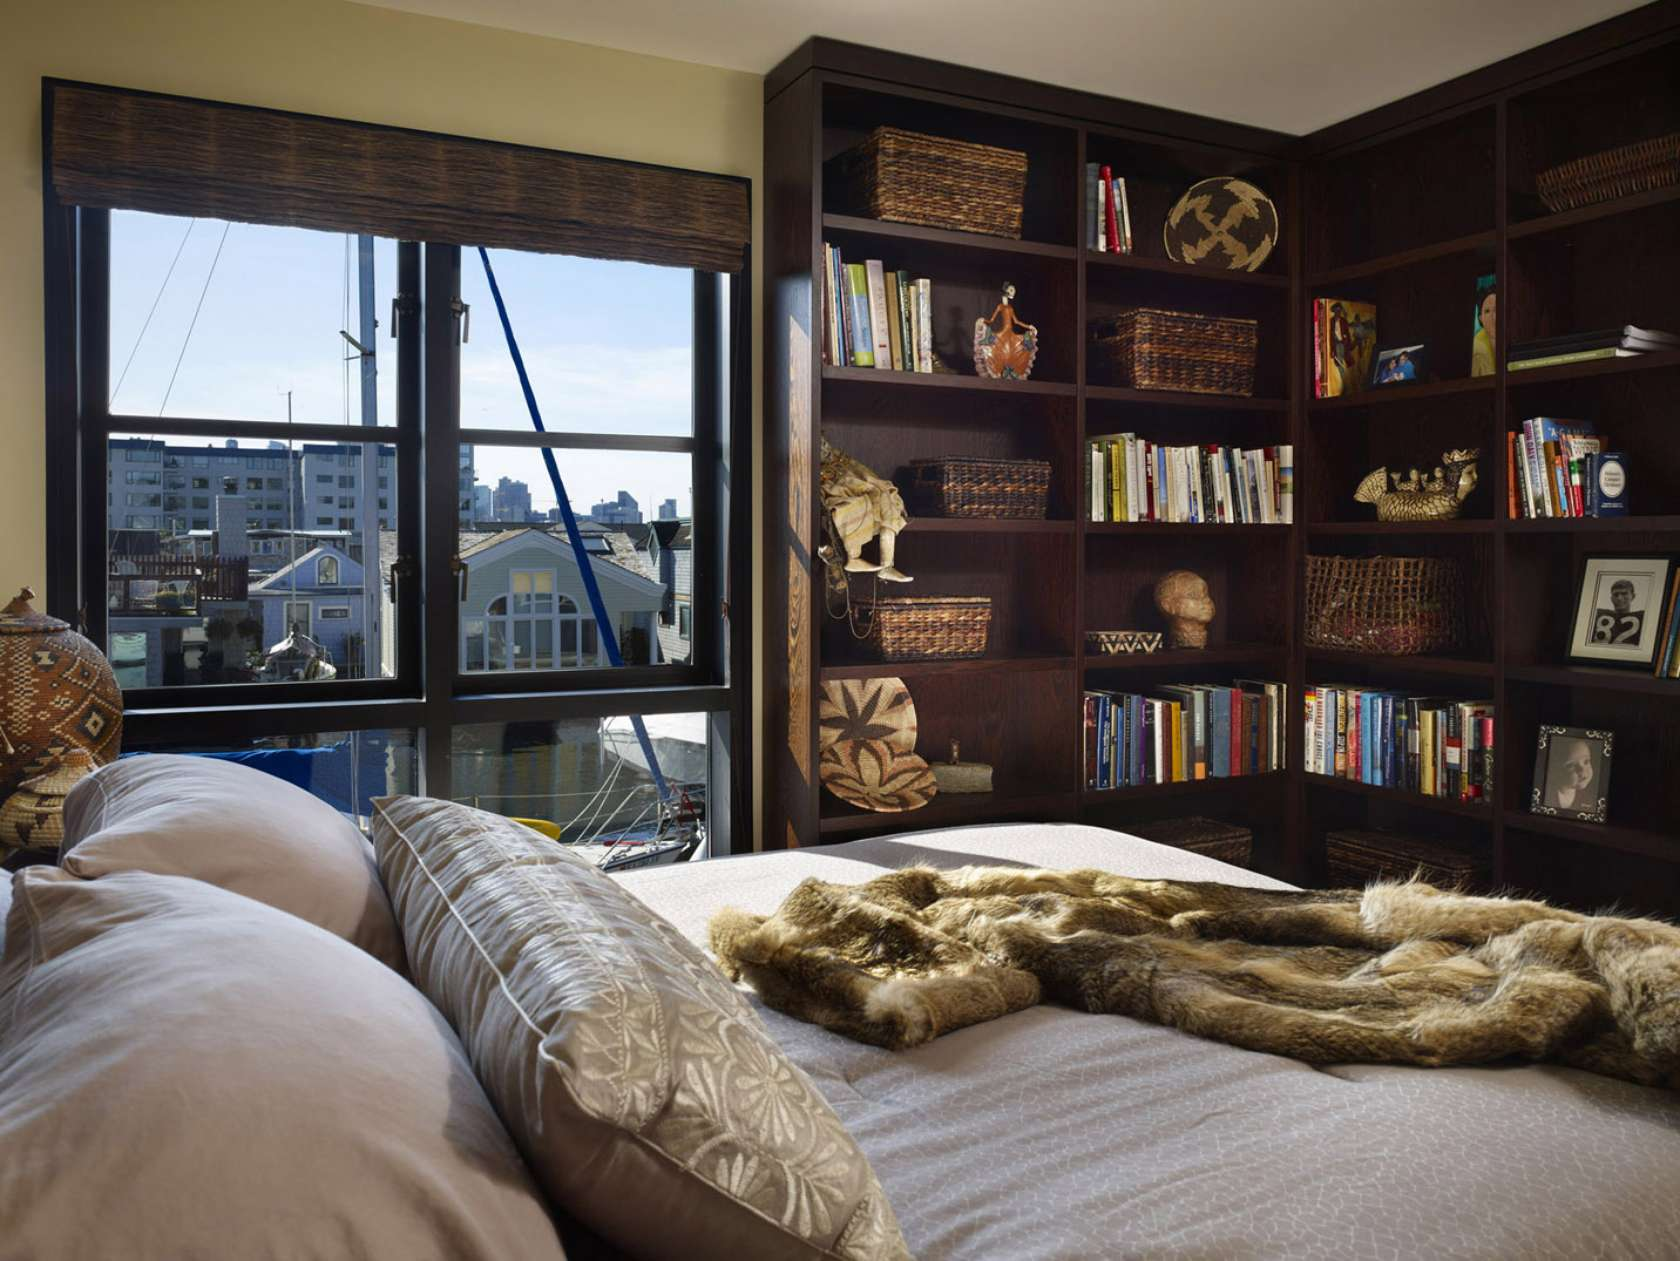 Clever ways in which a corner bookshelf can fill in the How to store books in a small bedroom